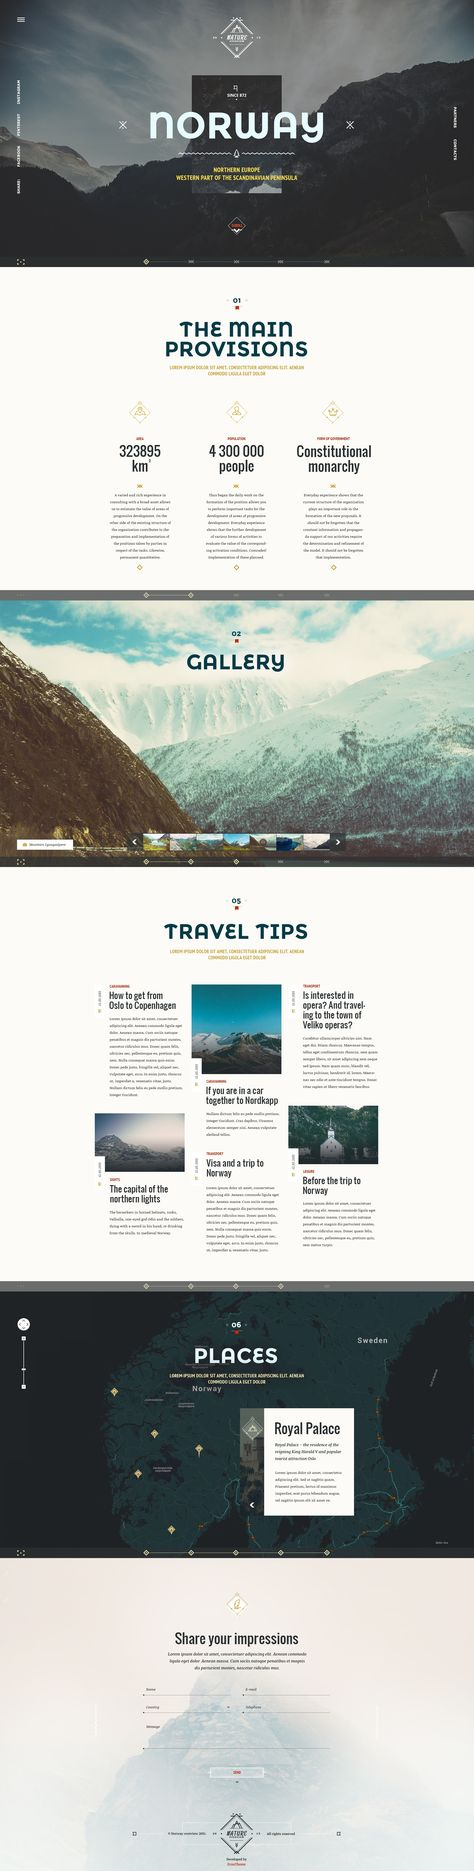 Norway Theme Nature Travel On Web Layout Design Web App Design Web Design Projects